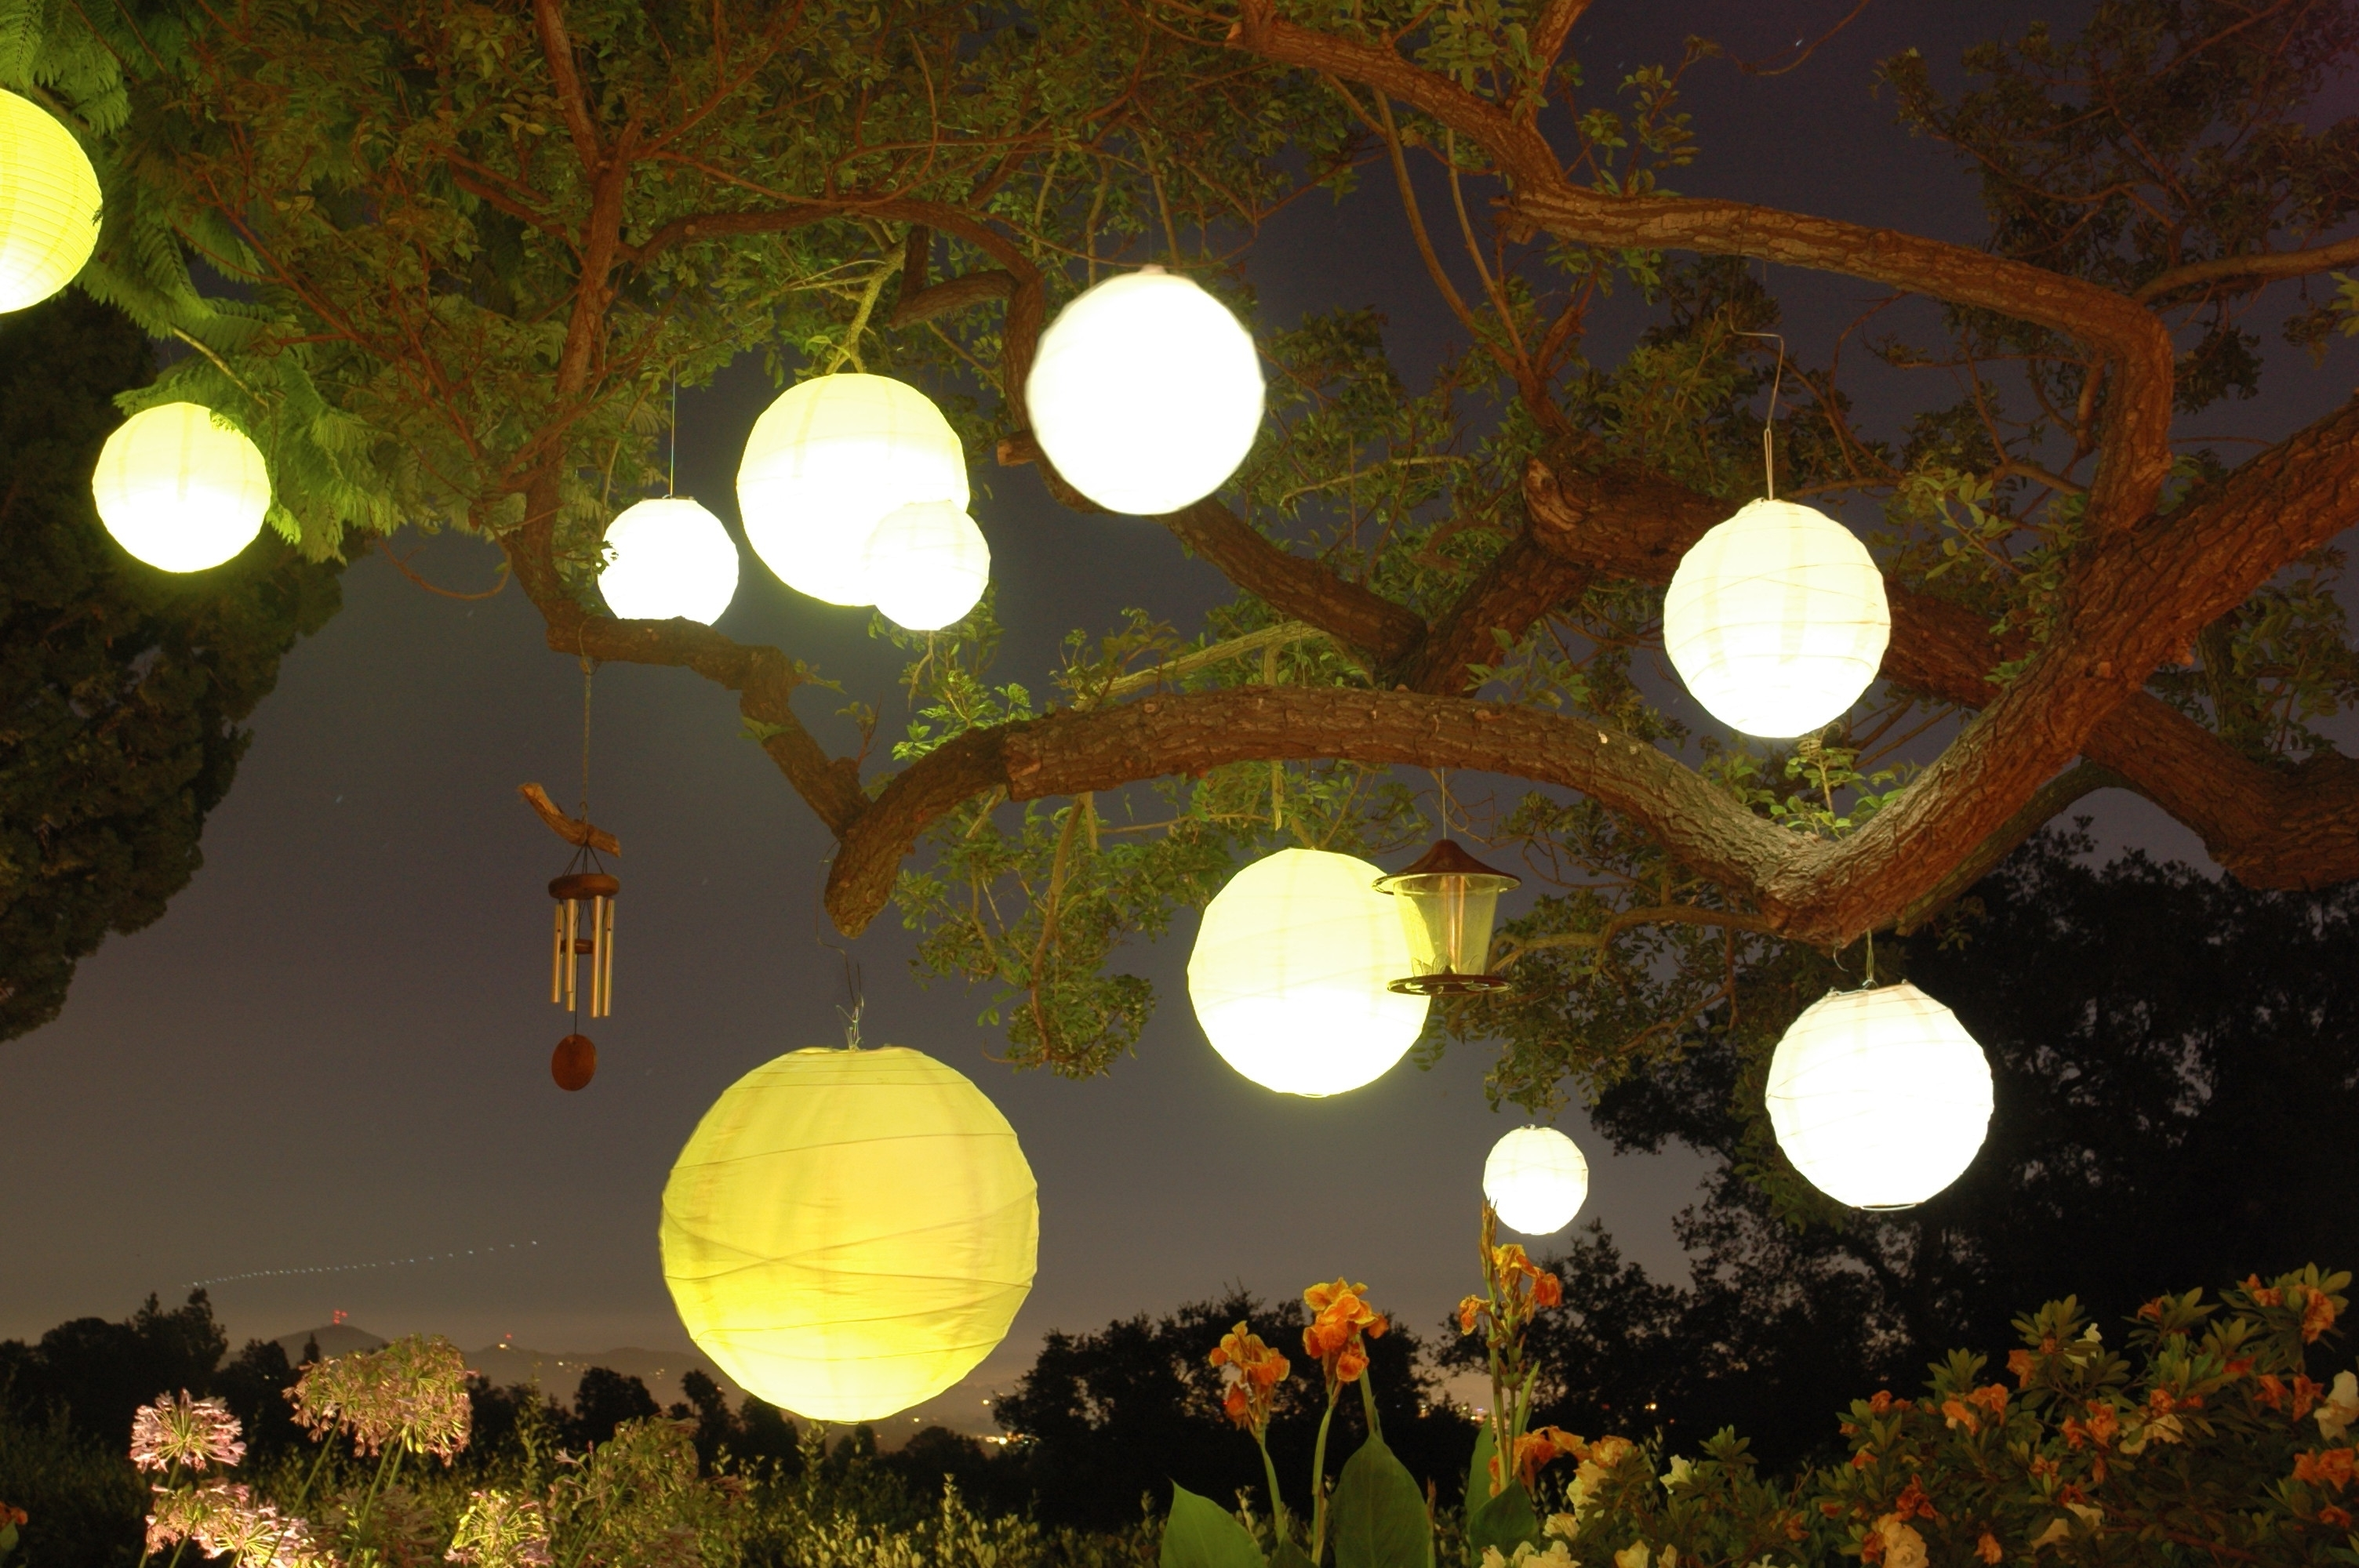 Diy : Divine Outdoor Lighting Via Paper Lanterns Wedding Hanging Intended For 2018 Outdoor Hanging Party Lanterns (View 14 of 20)